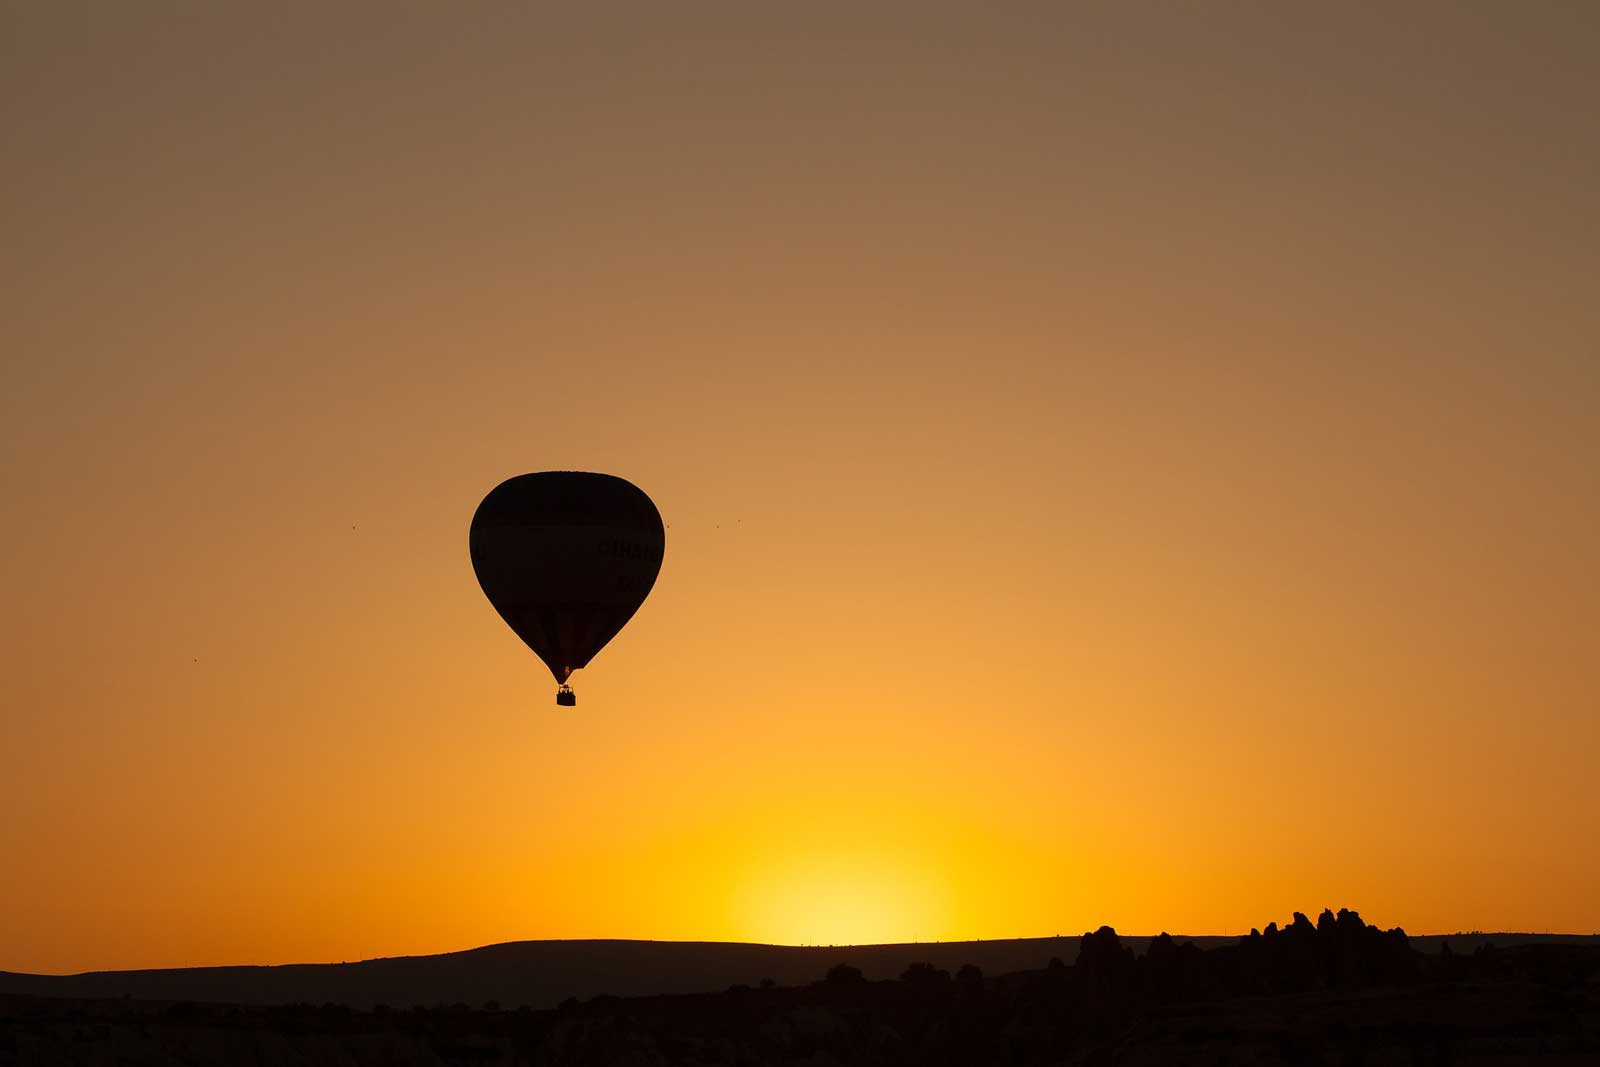 Hot-air balloon at sunset